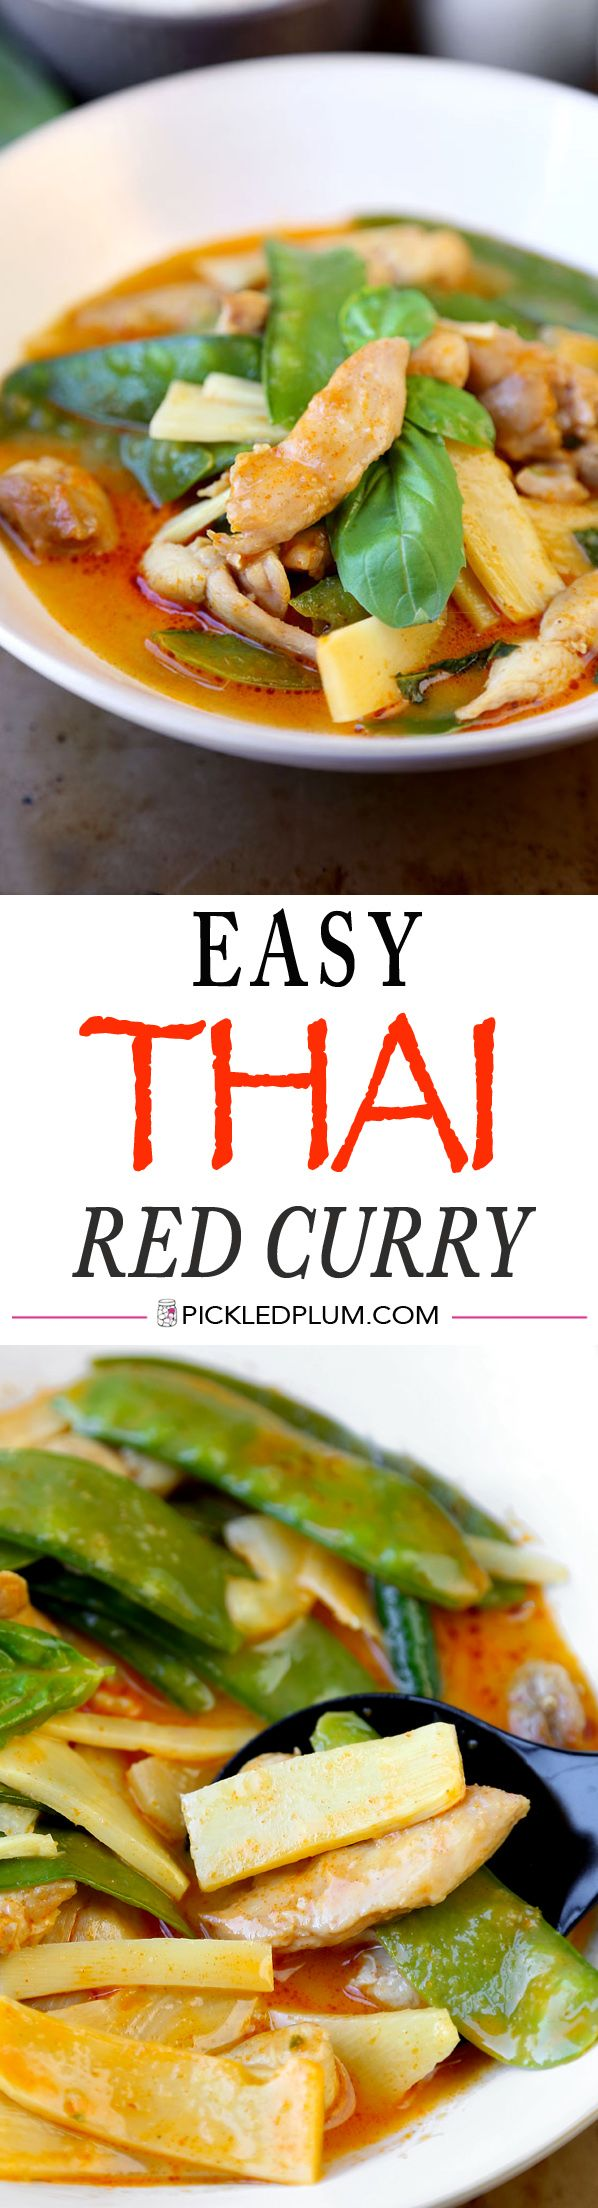 Easy Chicken Thai Red Curry Recipe - 10 ingredients and ready in 15 minutes! http://www.pickledplum.com/easy-thai-red-curry-recipe/